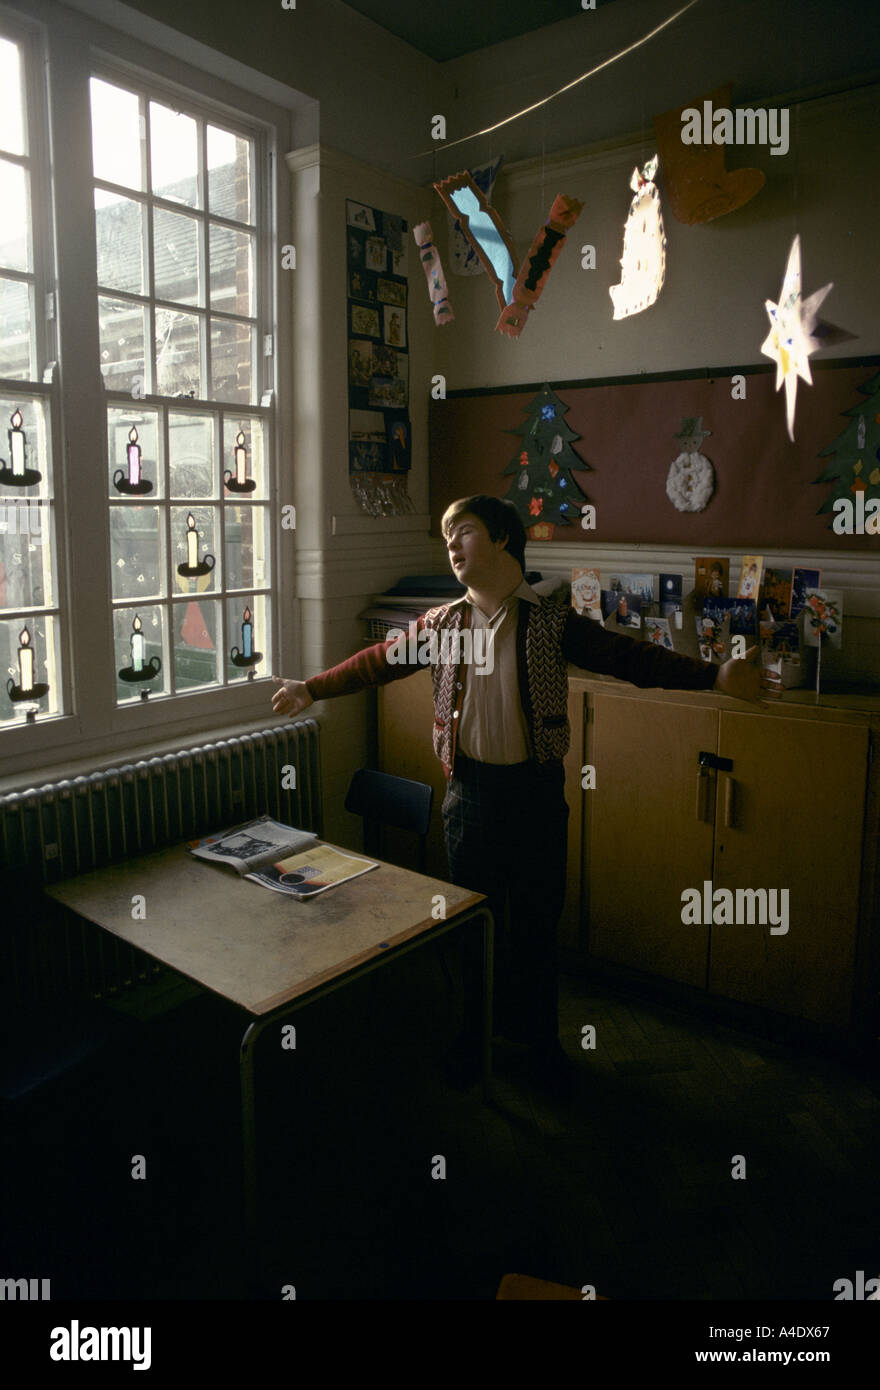 Mentally handicapped child in a home with christmas decorations in the window - Stock Image